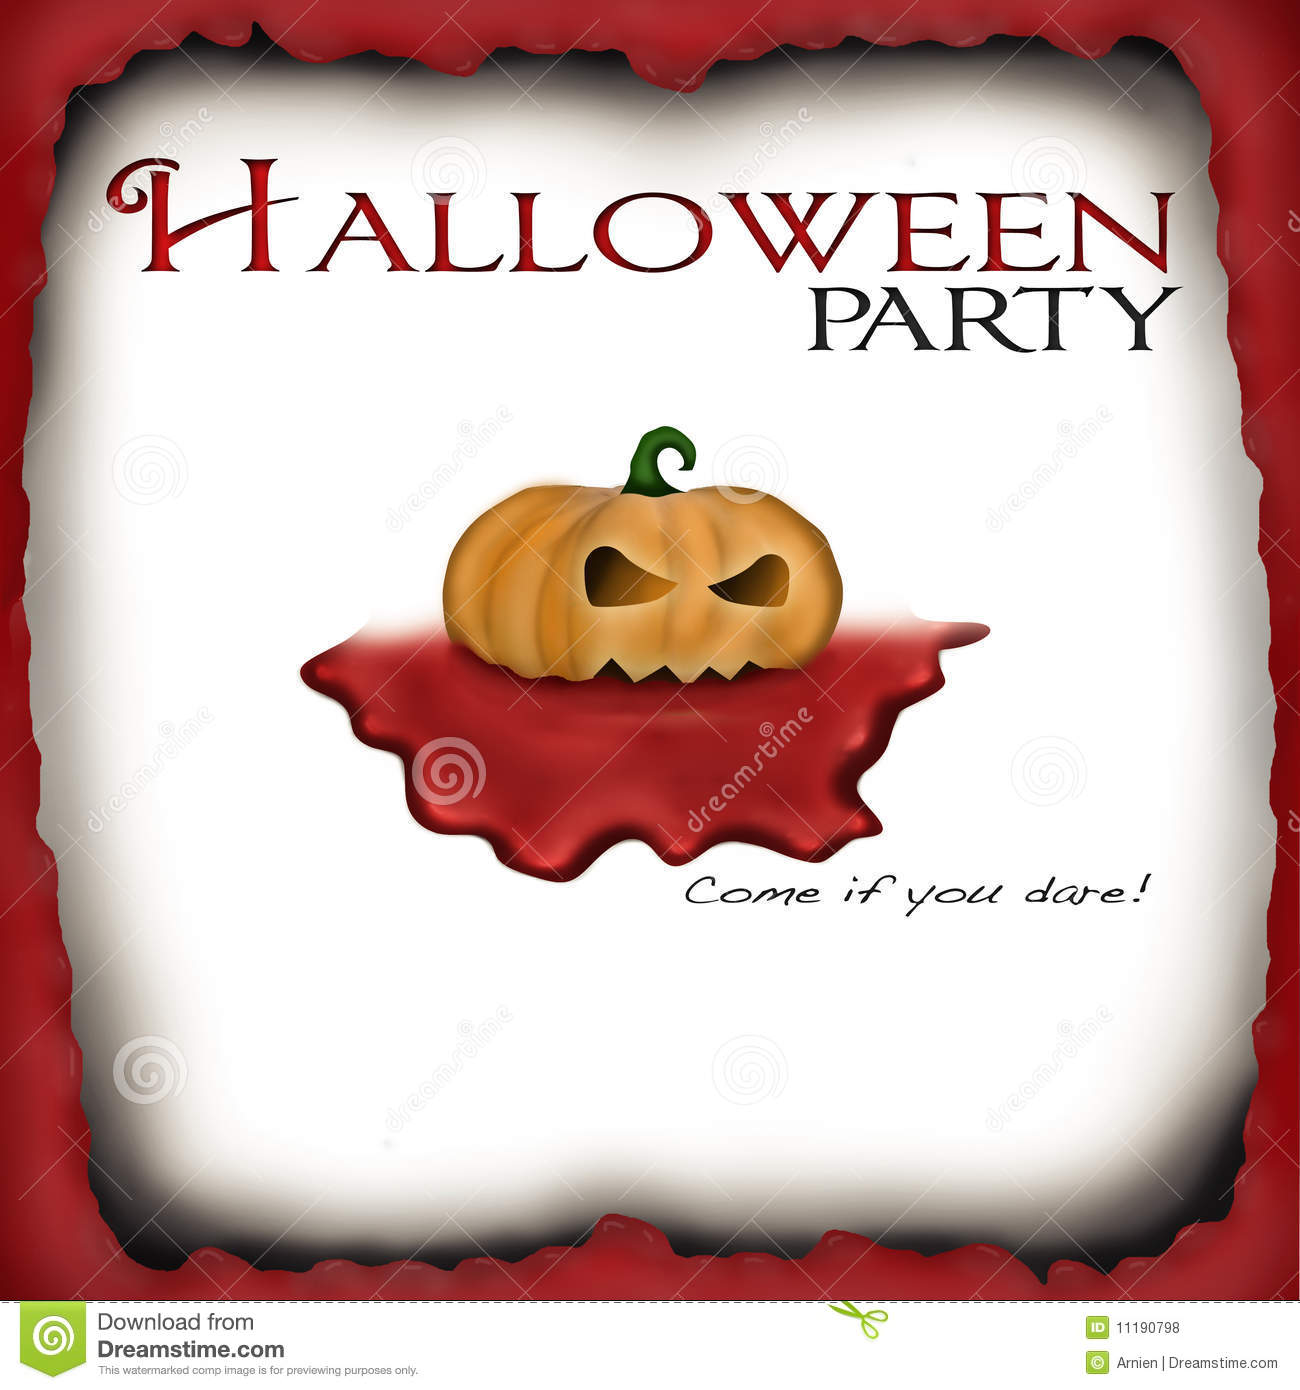 halloween clipart invitations - photo #36